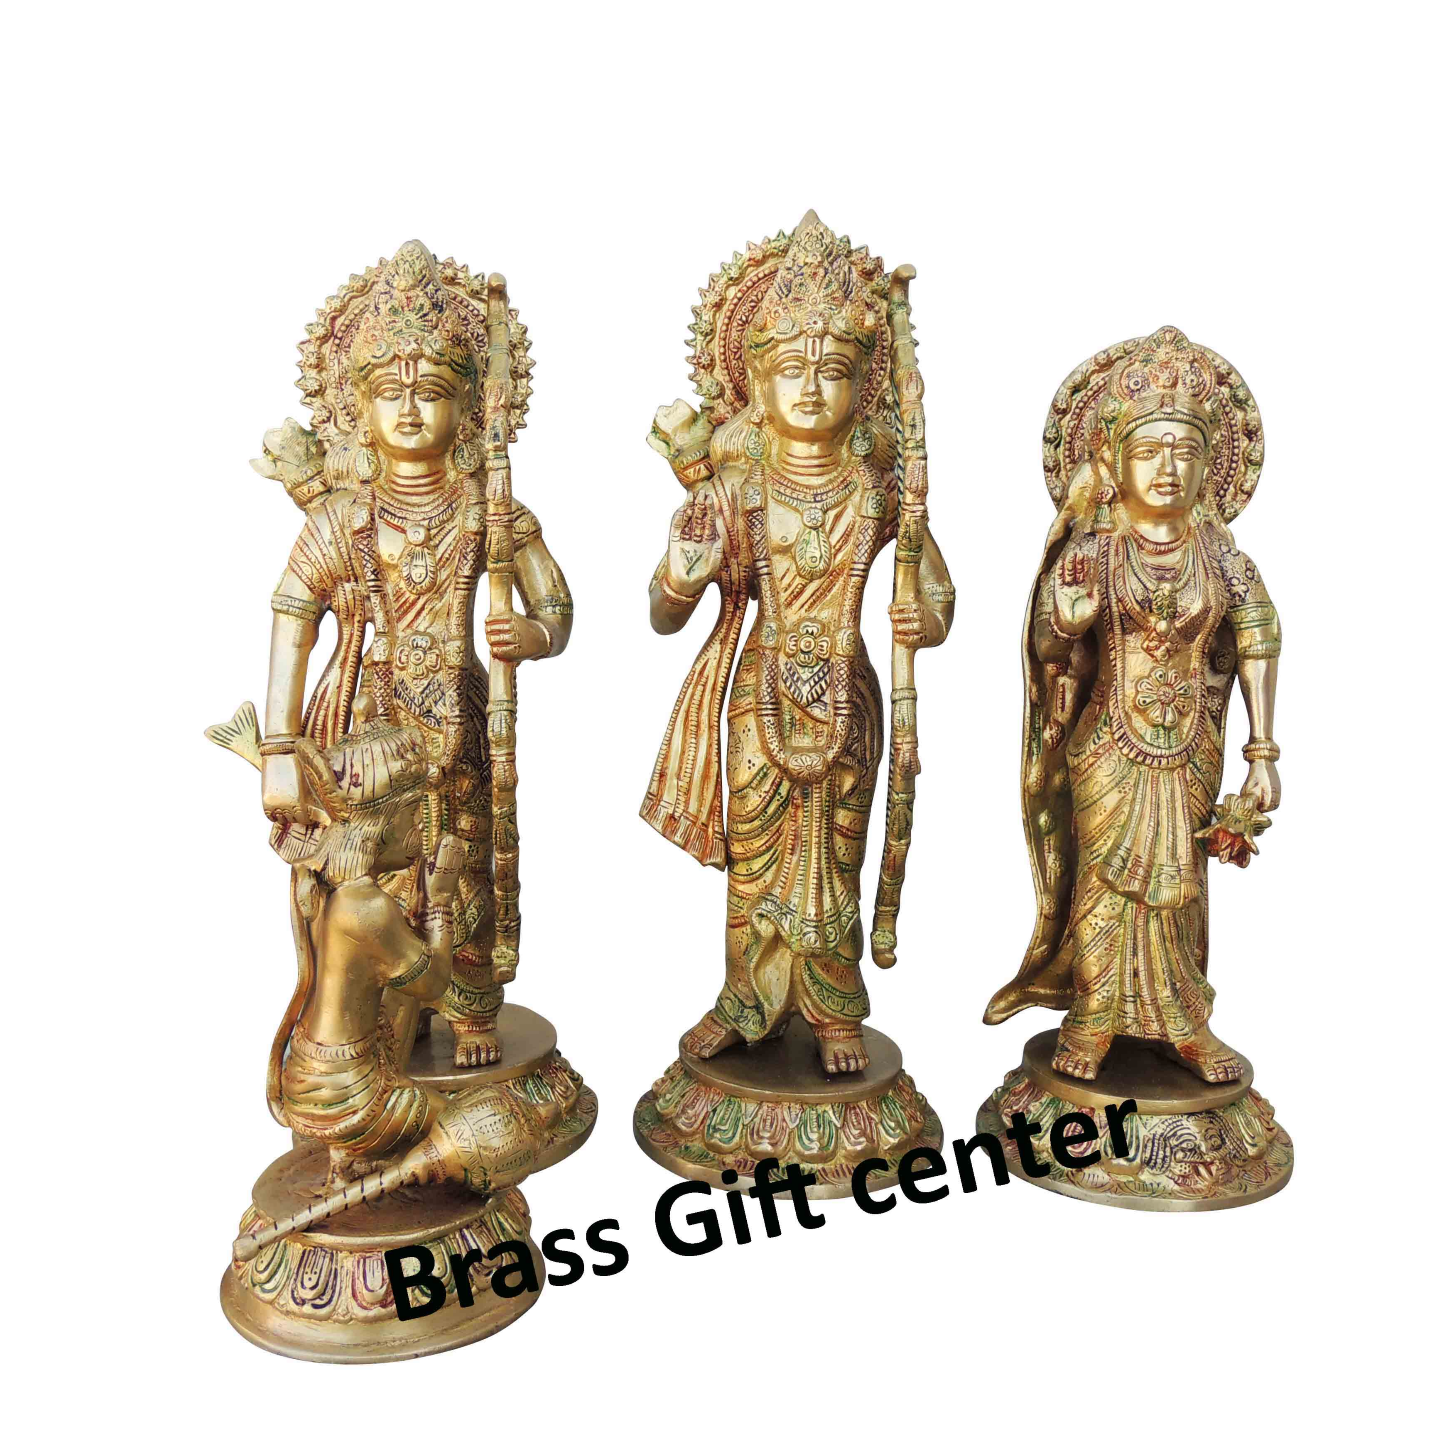 Brass Ram Dharbar Statue Idol Murti Multicolour  lacquer finish - 15.5*9.5*15.3 Inch  (BS827 A)